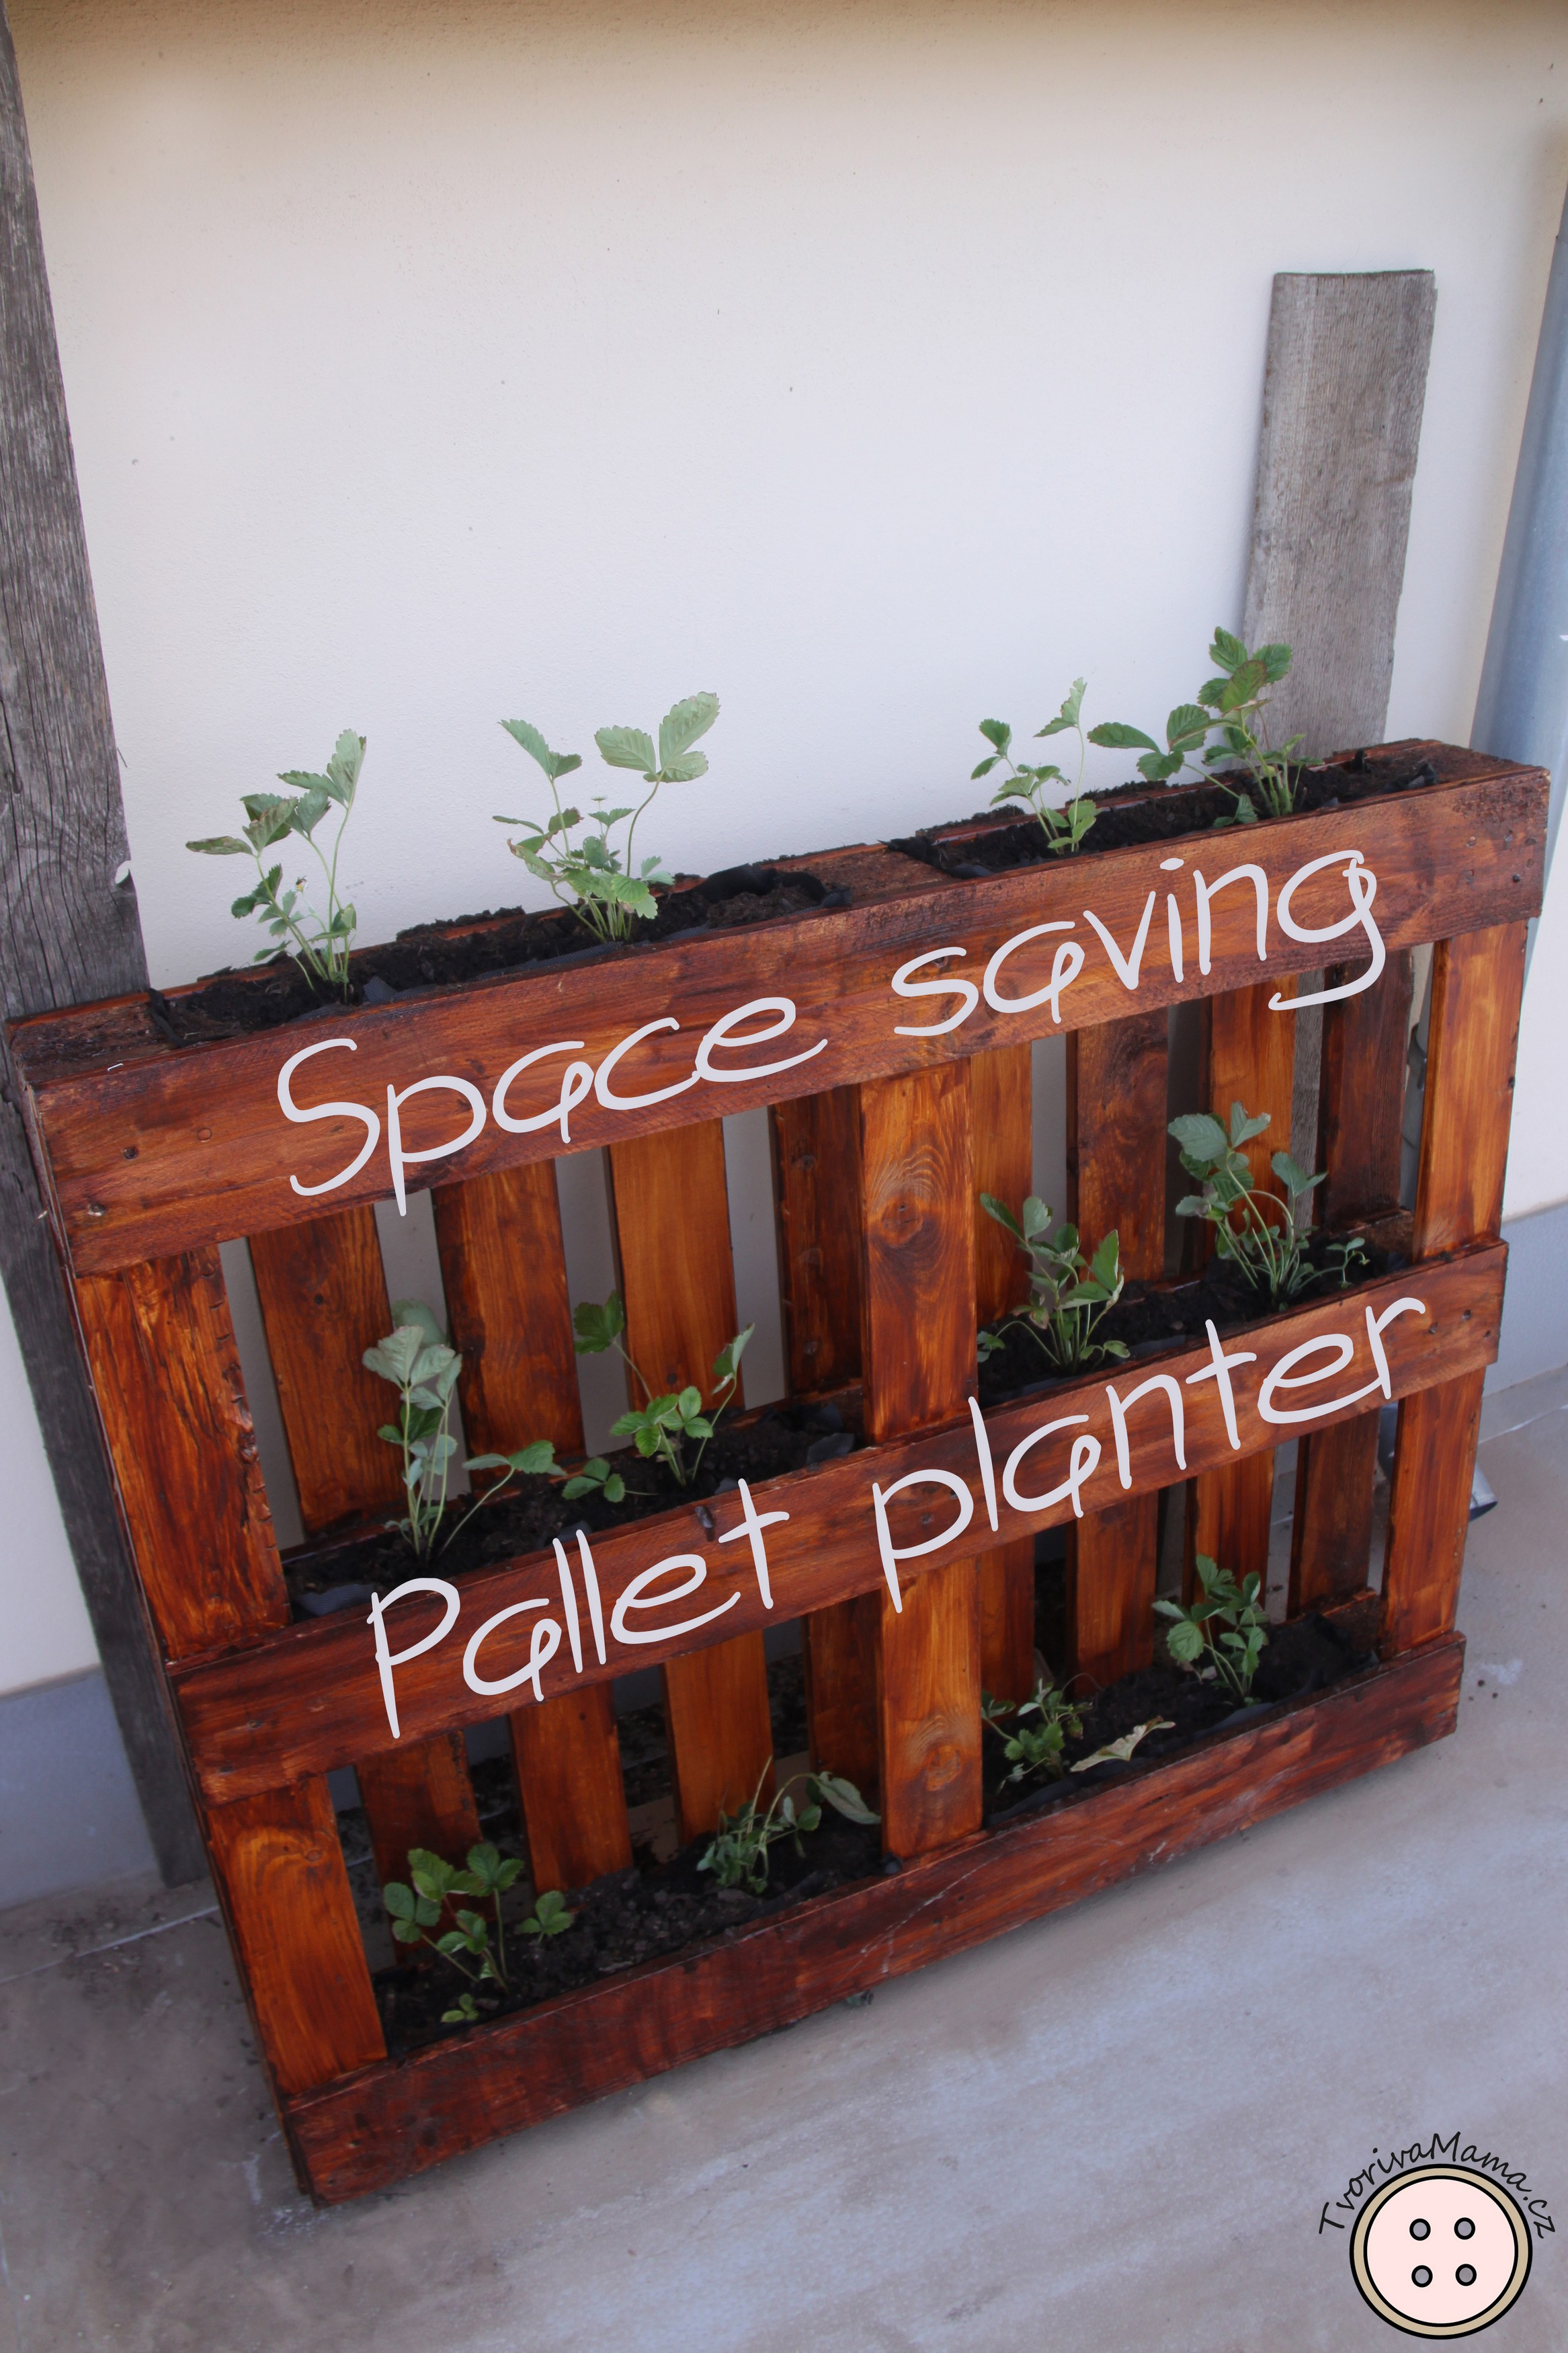 Picture of Space Saving Pallet Planter